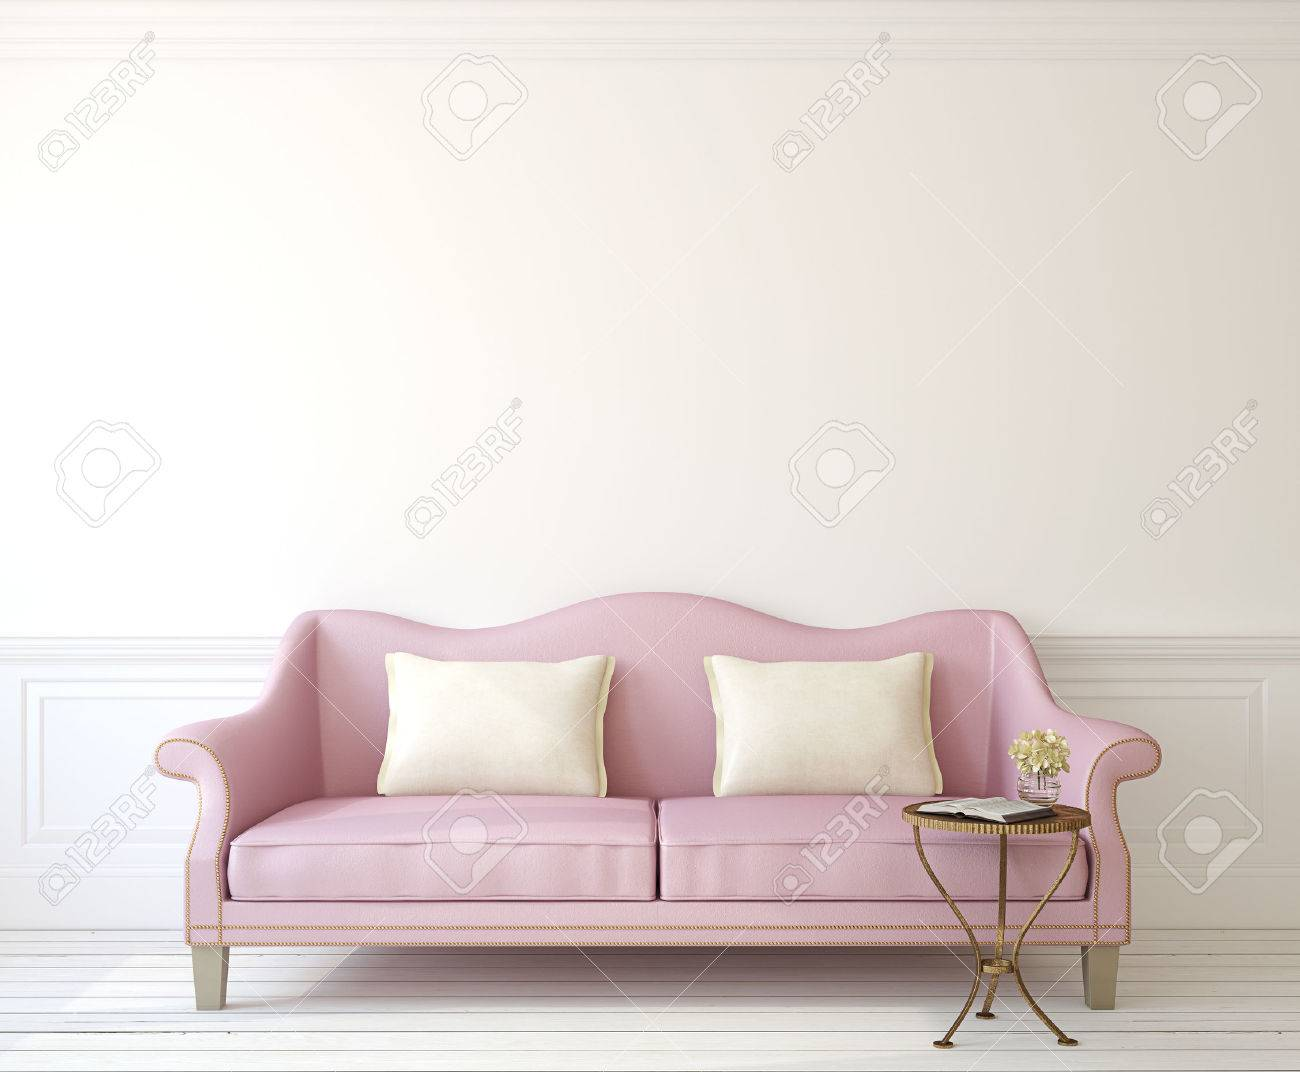 pink room romantic interior with pink couch near empty white wall 3d render